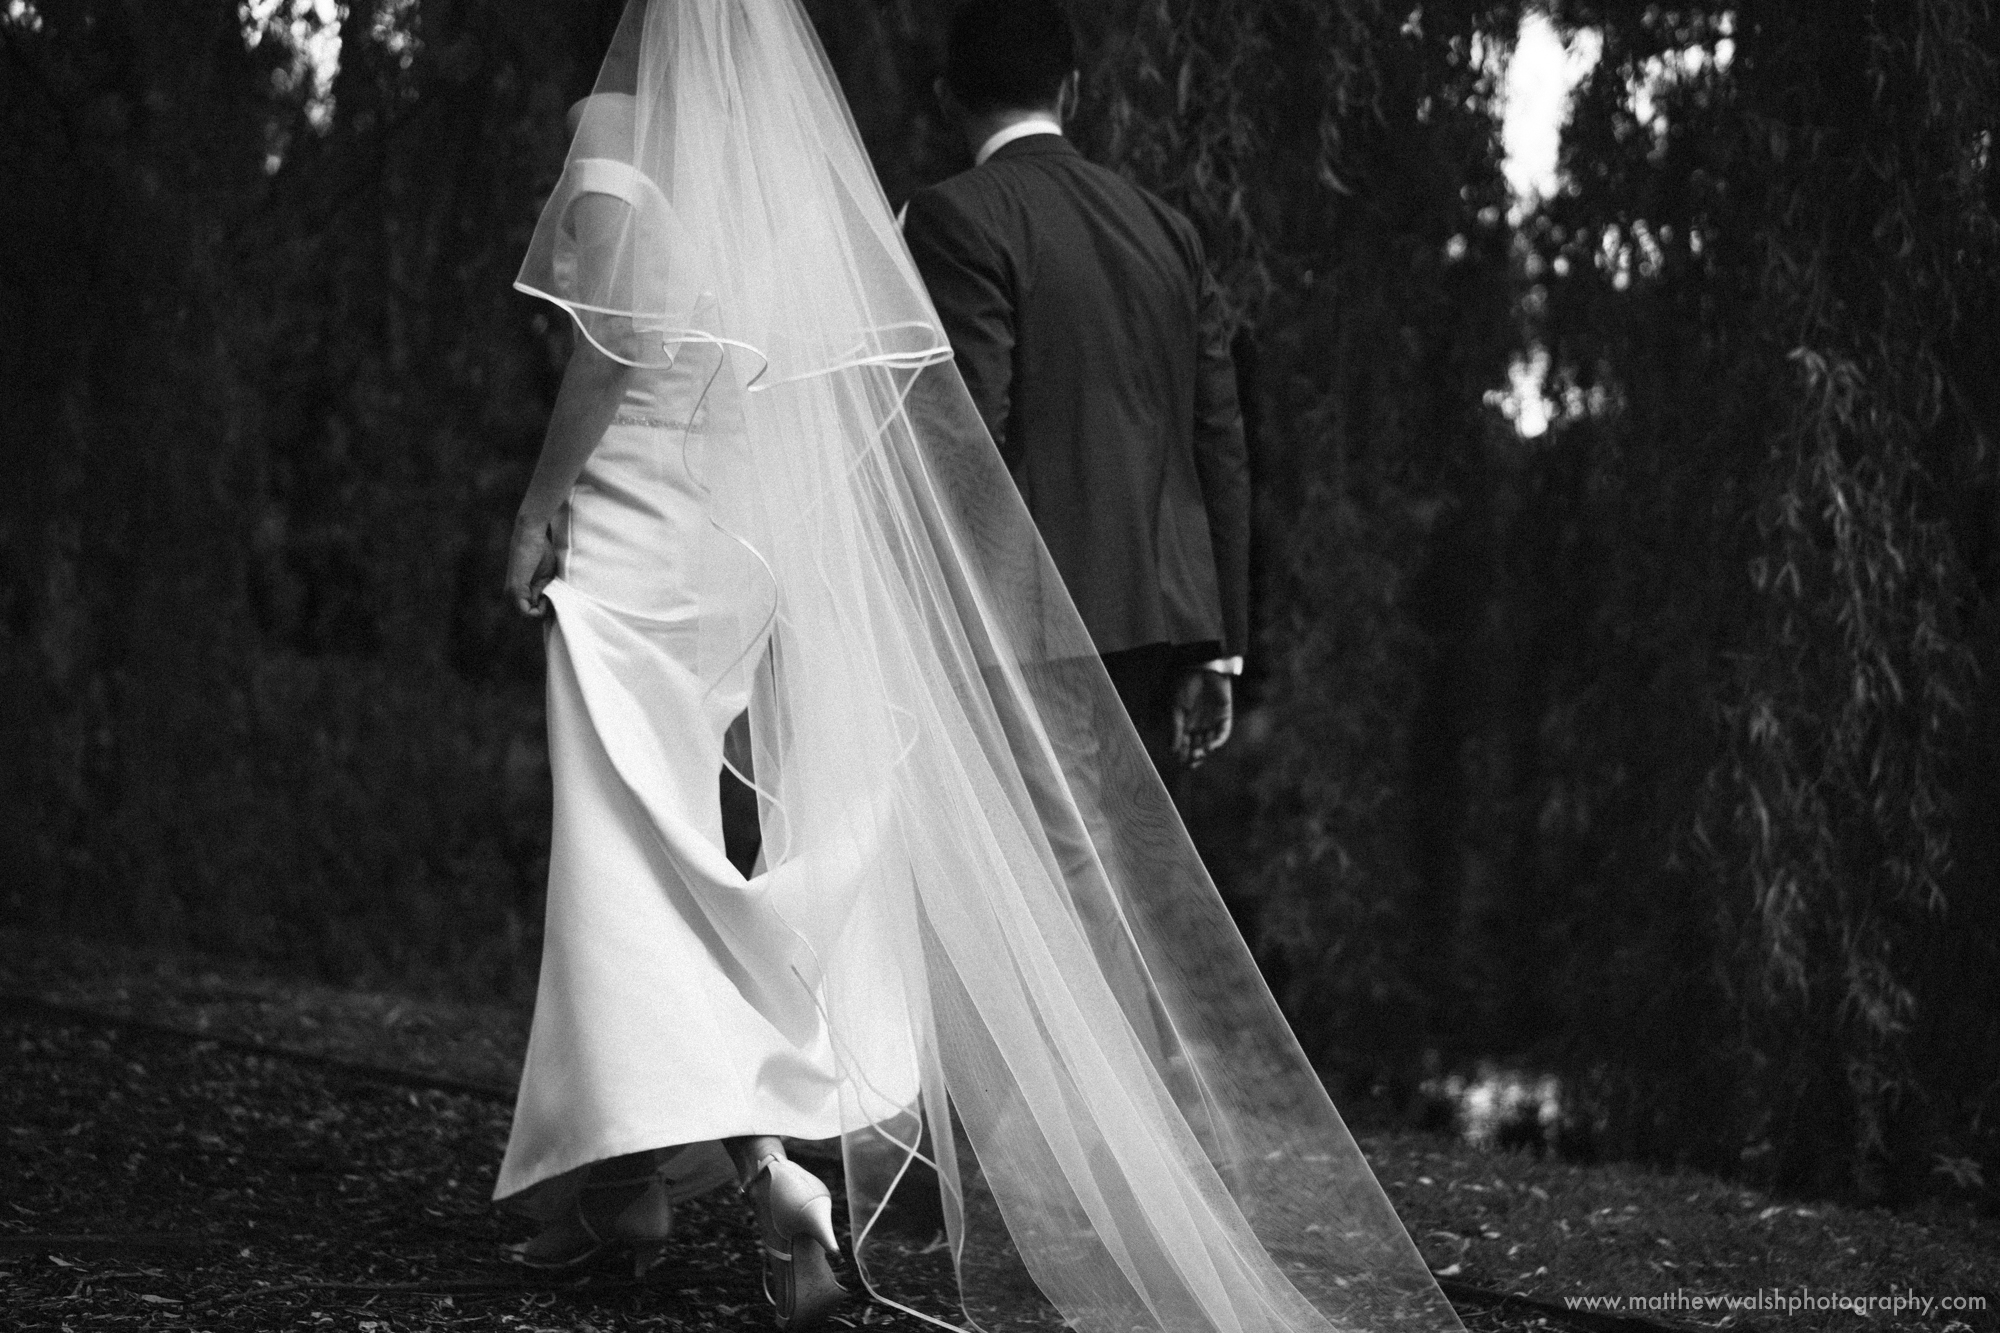 Dress details during couples time